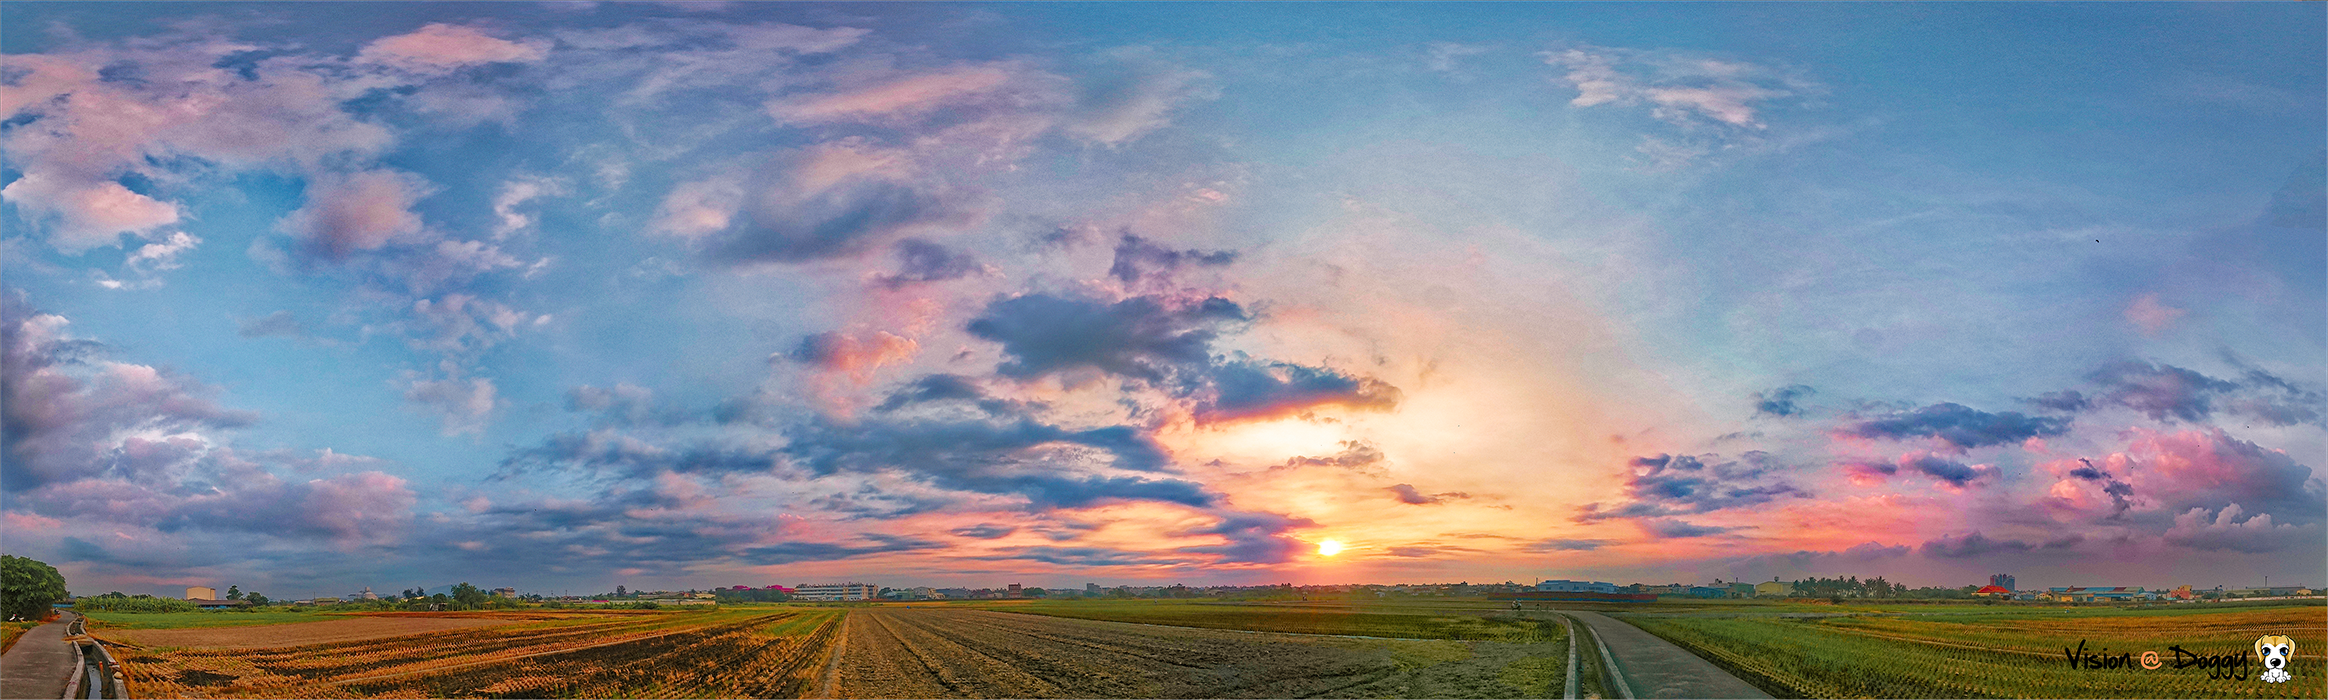 http://gnl.hunternet.com.tw/weider/web/wp-content/gallery/keliao/pic-20180607-01-sunset.png